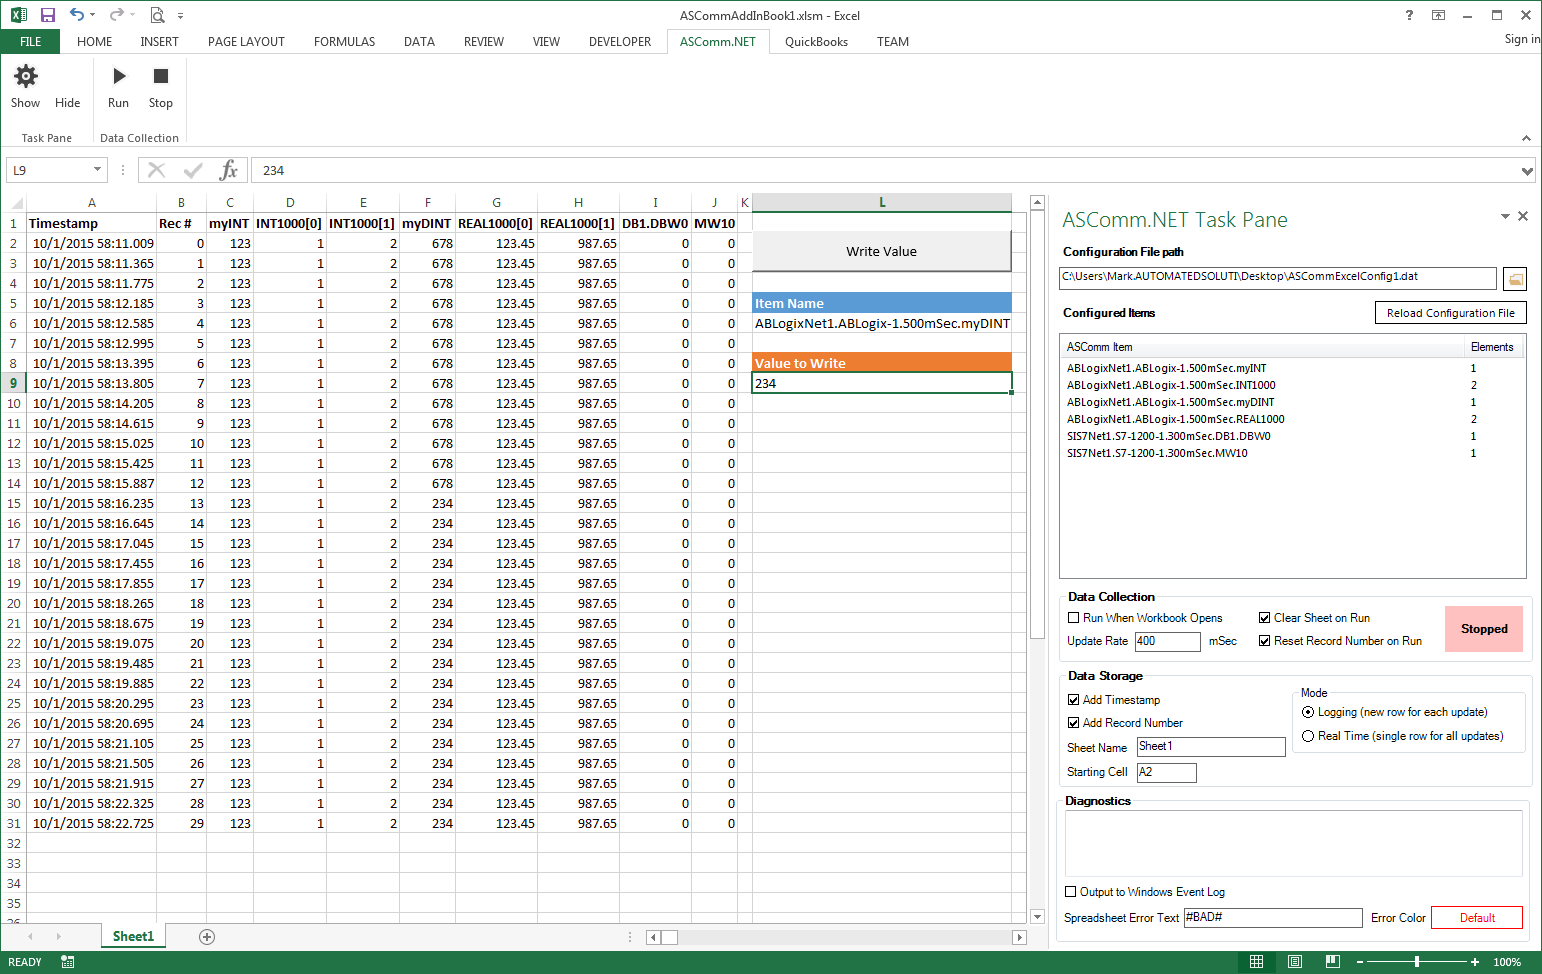 Excel Add-in for Allen-Bradley Data Logging